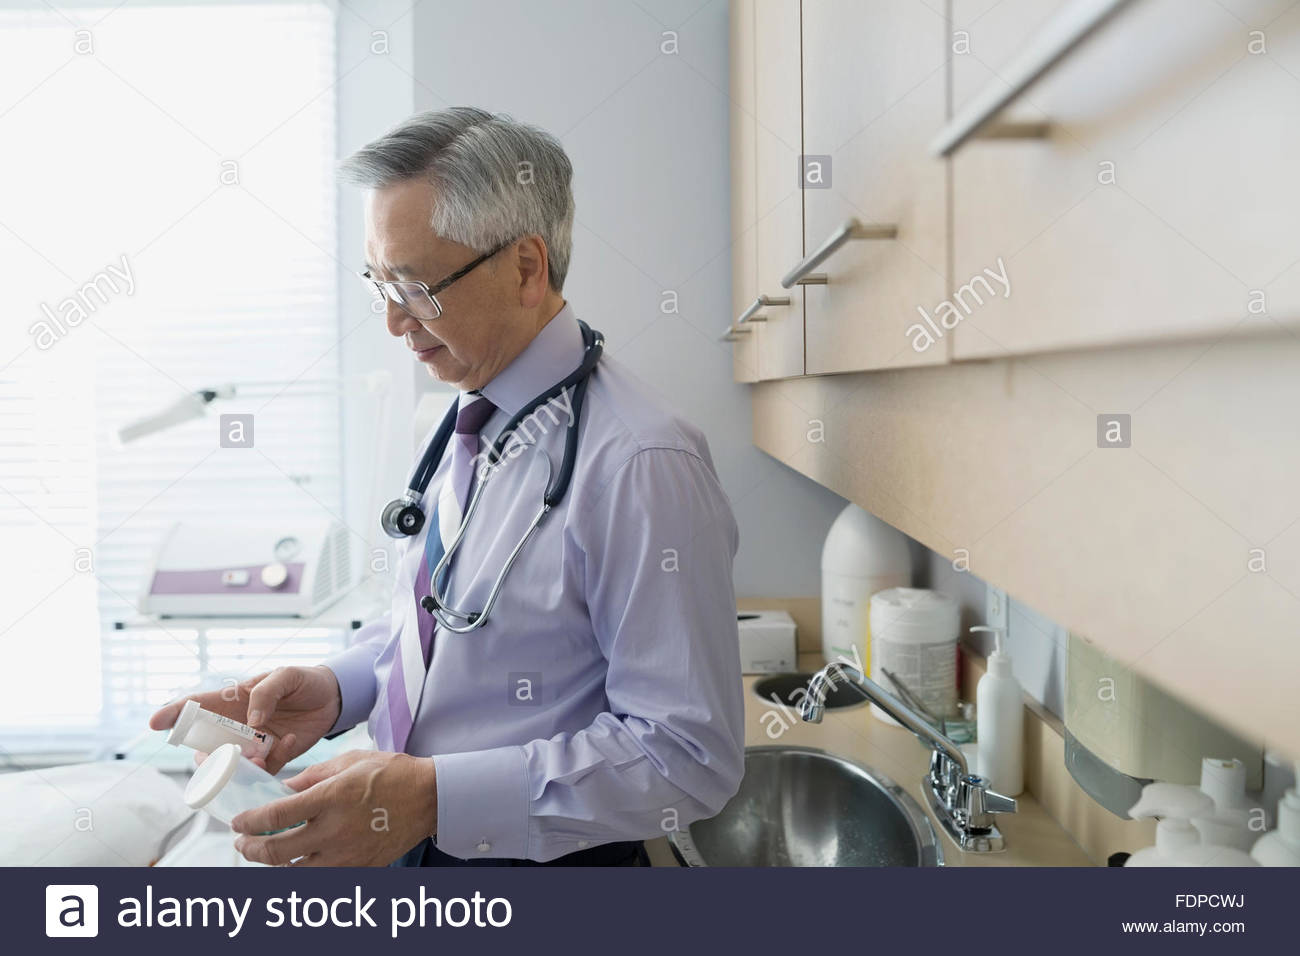 Doctor reviewing specimens in examination room - Stock Image